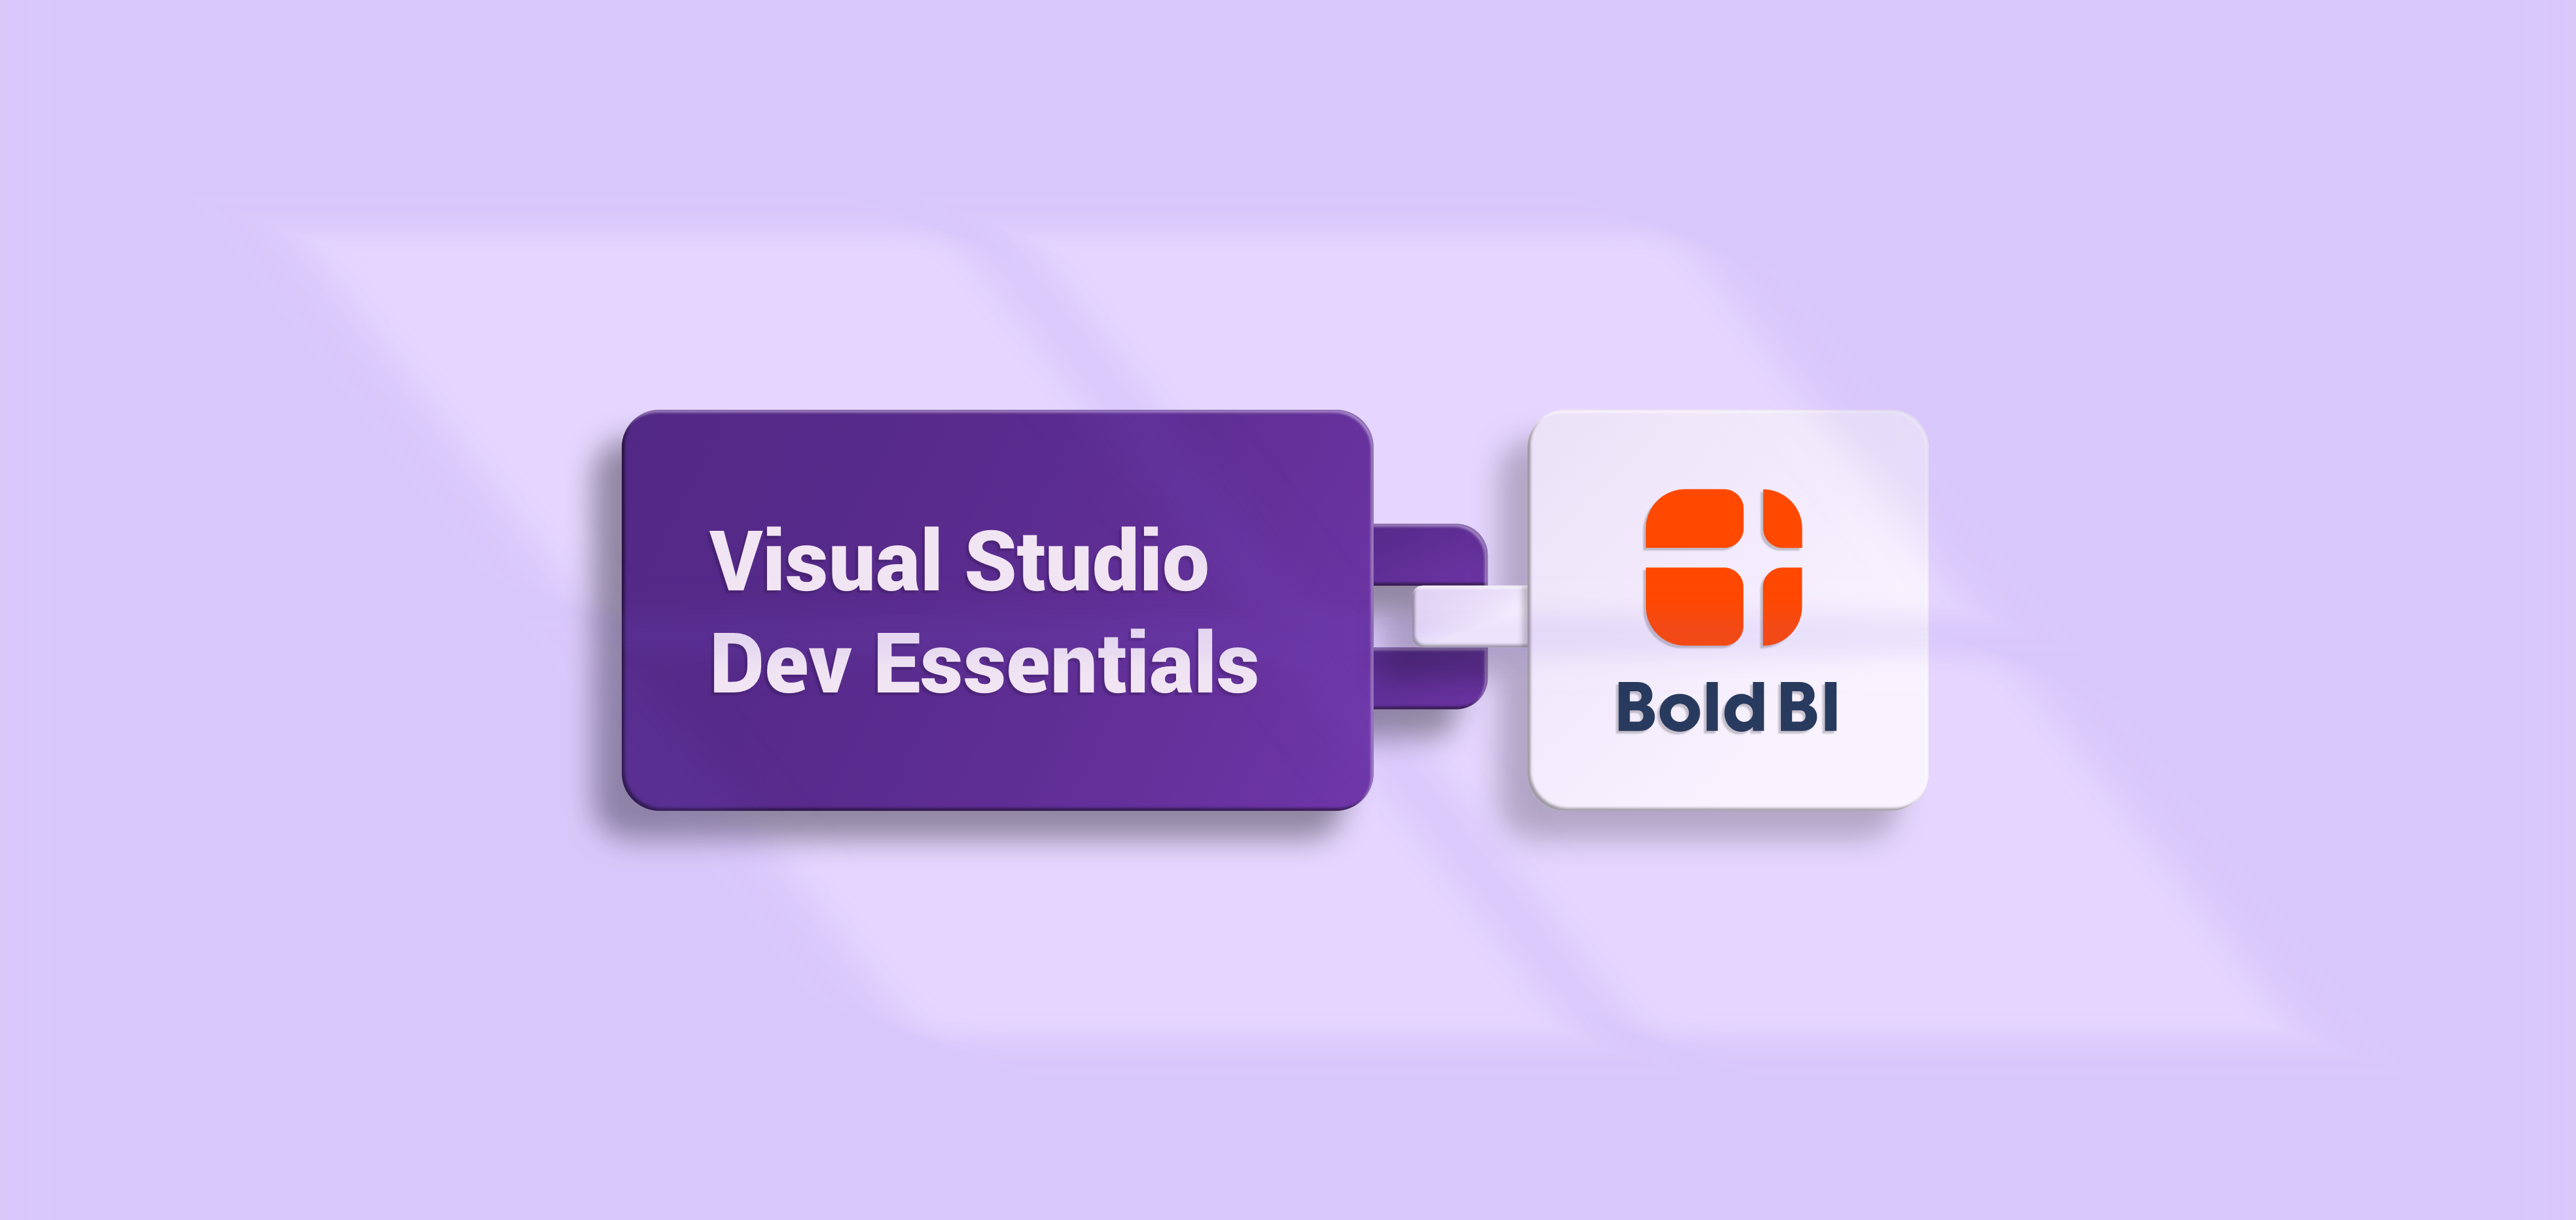 Bold BI now part of Microsoft Visual Studio Dev Essentials - Blog